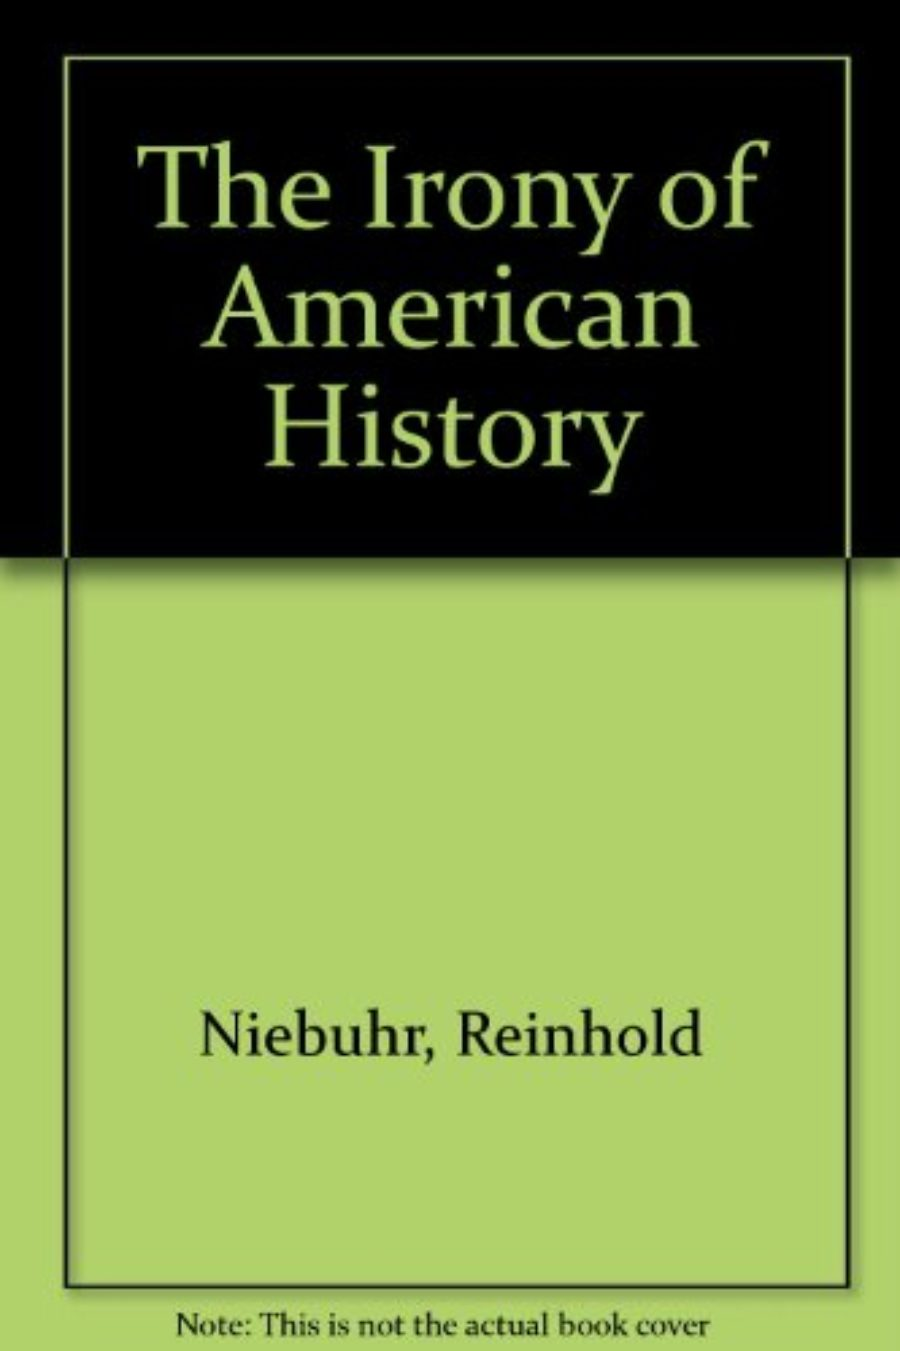 Cover of IRONY OF AMERICAN HISTORY